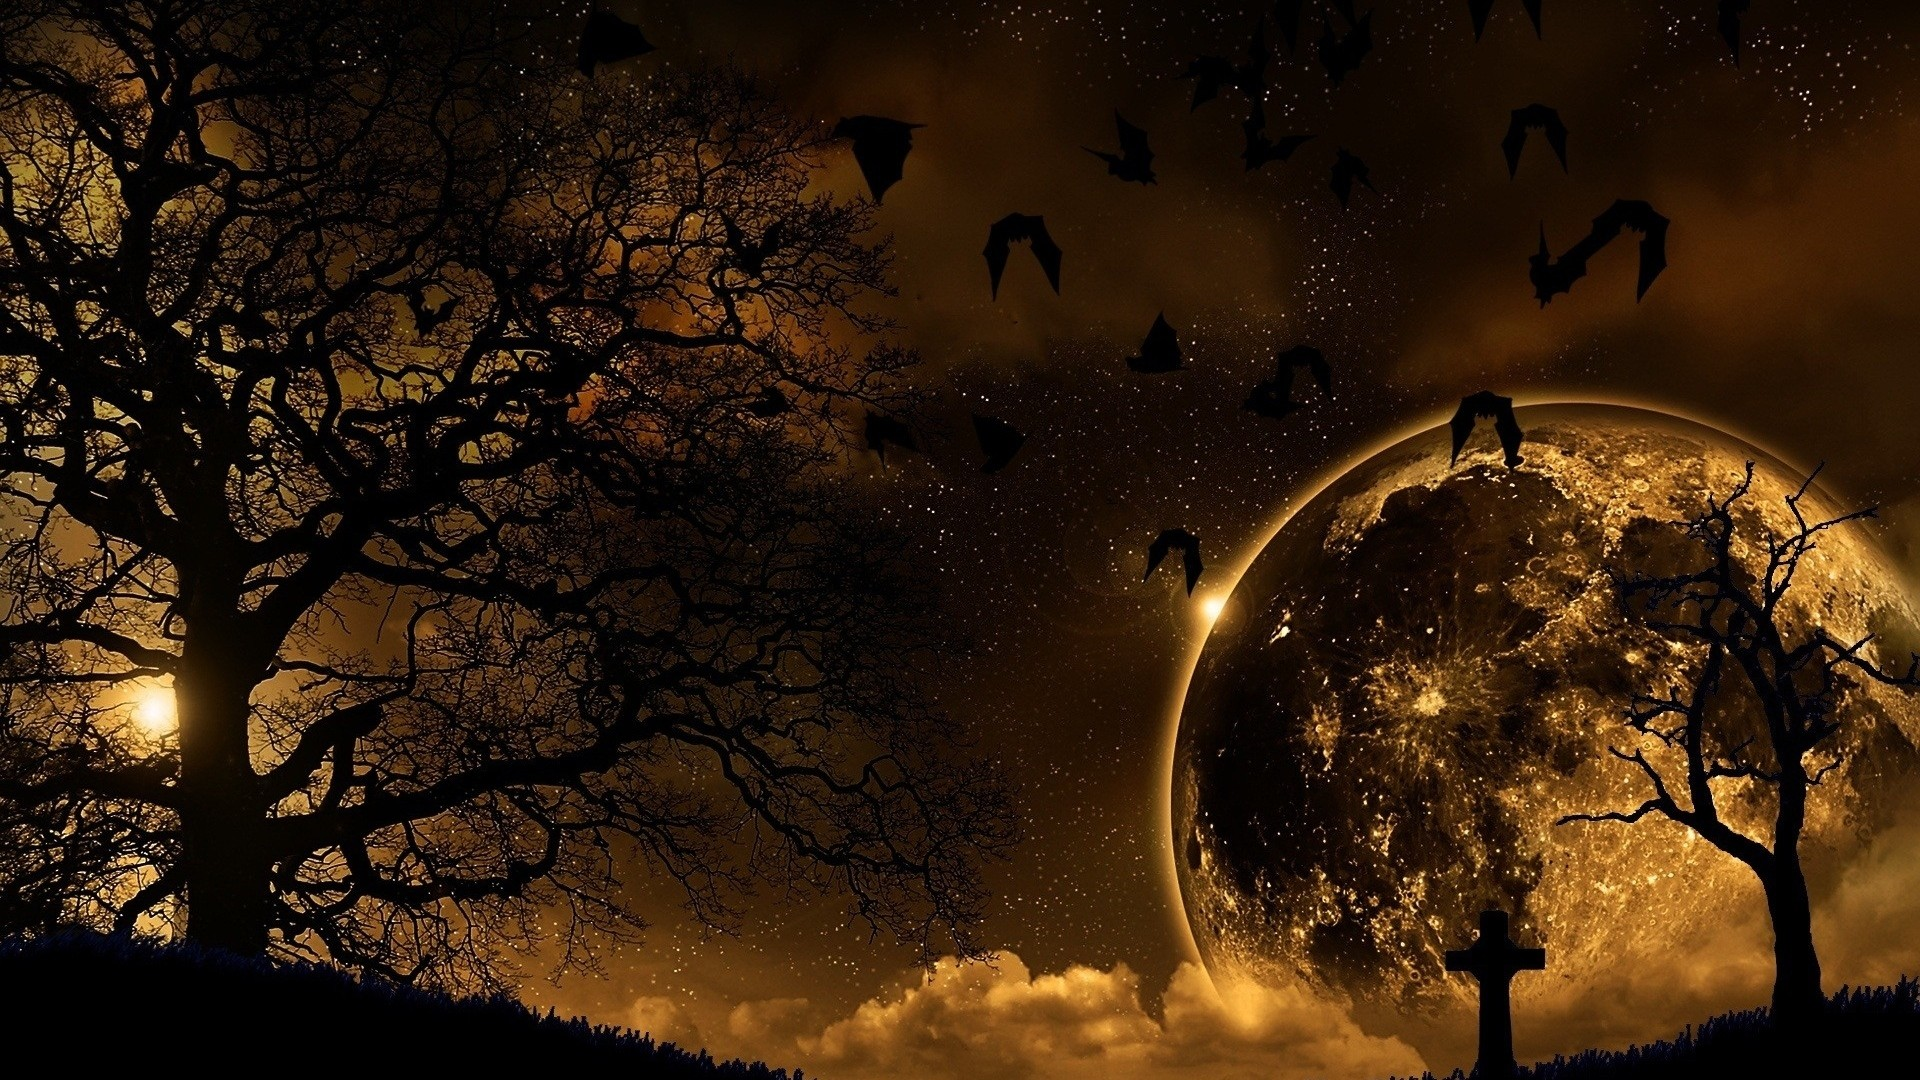 Preview wallpaper trees, nature, night, planet, birds, landscape 1920×1080